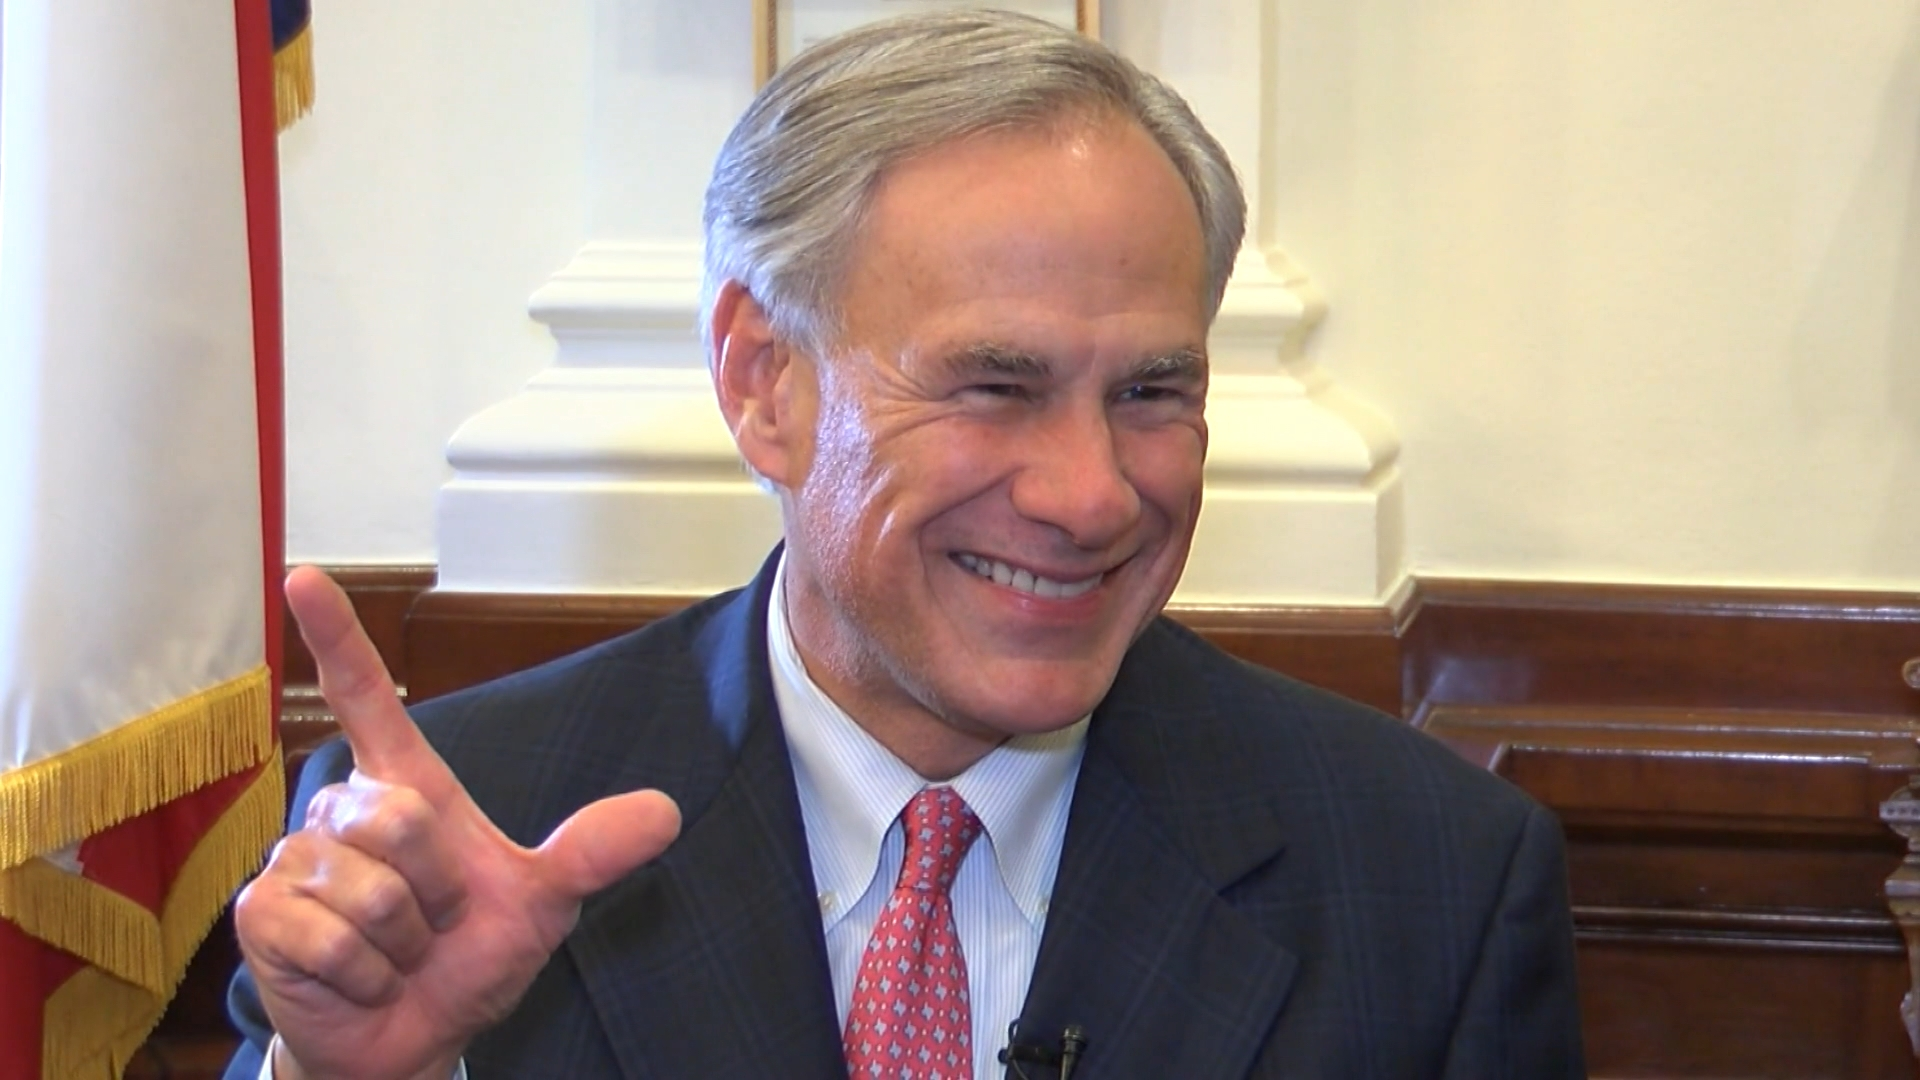 GOV GREG ABBOTT GUNS UP WRECK EM TEXAS TECH FINAL FOUR_1554409393162.jpg.jpg